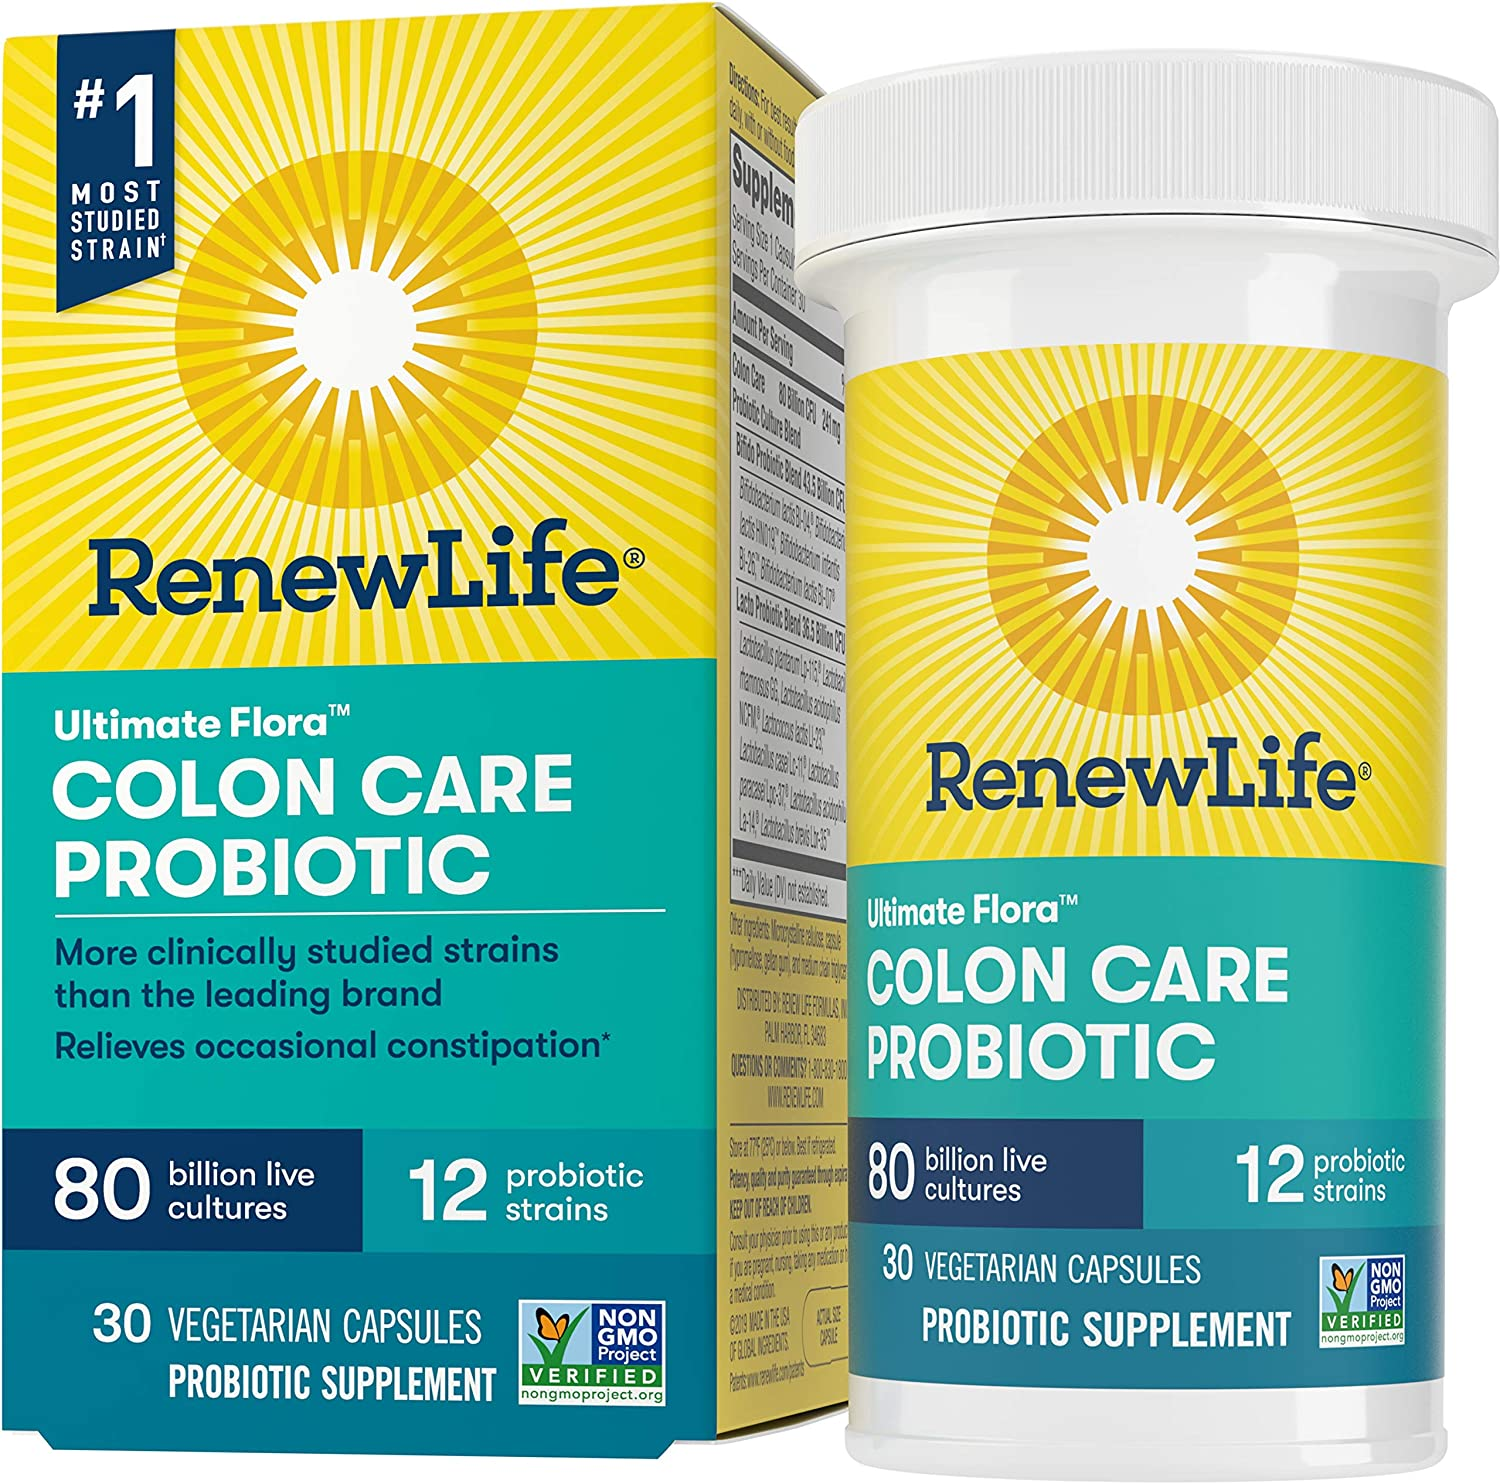 Renew Life Adult Probiotic - Ultimate Flora Colon Care Probiotic Supplement - Shelf Stable, Gluten, Dairy & Soy Free - 80 Billion CFU - 30 Vegetarian Capsules (Pack May Very) (Package May Vary)